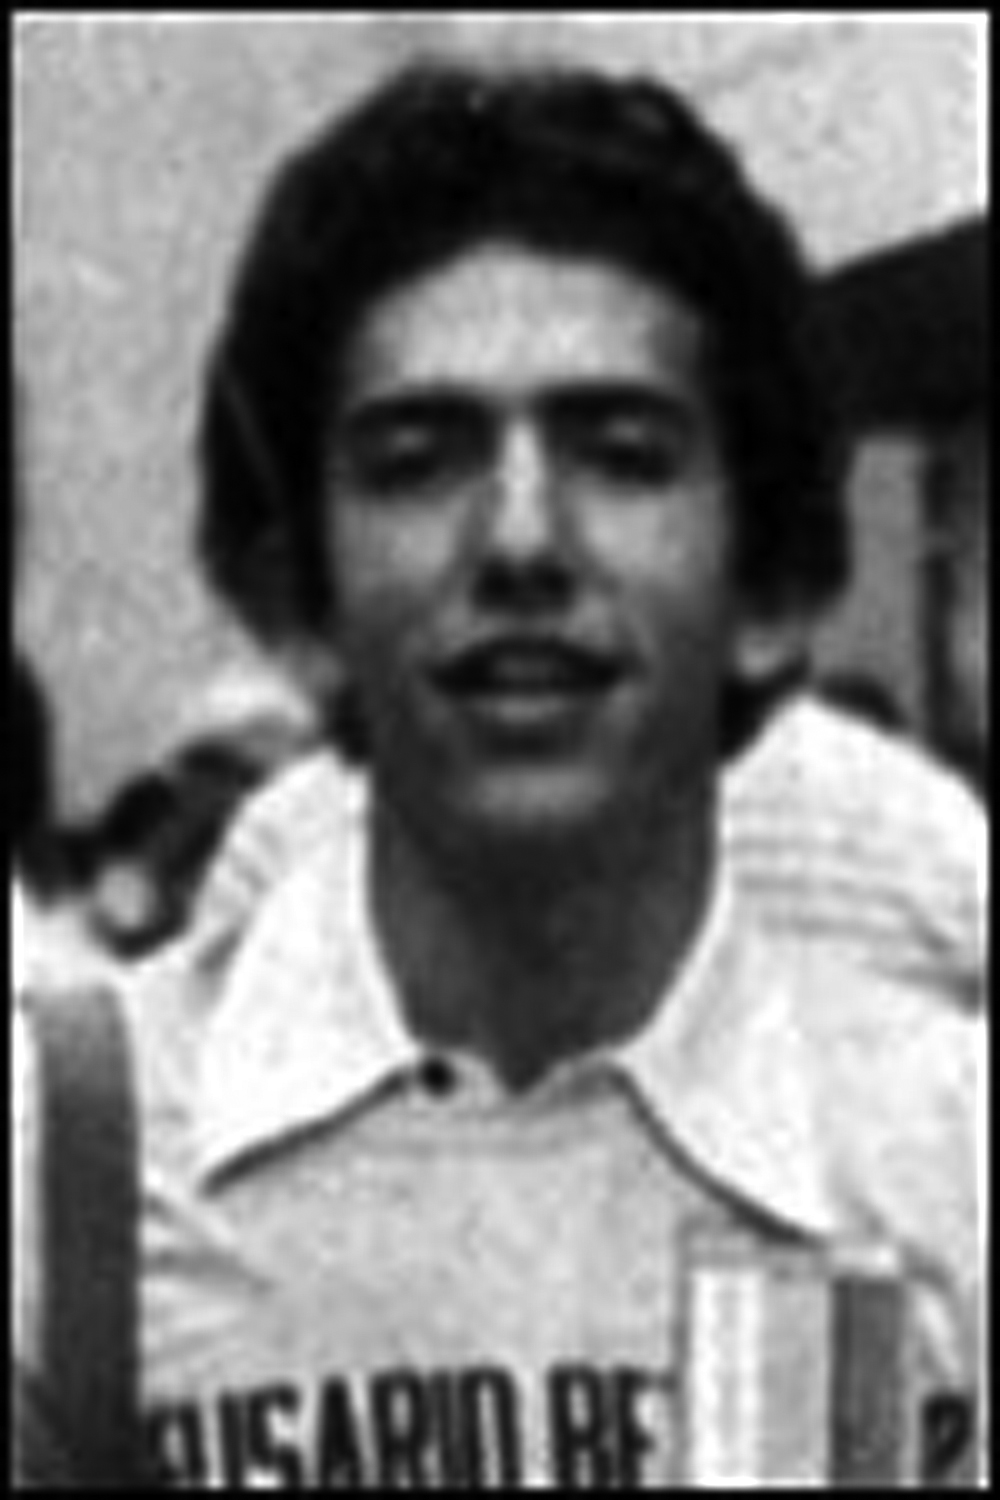 luis garavito the world s worst serial Luis garavito definitely earned his nickname the beast, although few beasts would be capable of his atrocities garavito admitted to the murder and rape of 140 young boys, but his toll ma luis garavito definitely earned his nickname the beast, although few beasts would be capable of his atrocities.